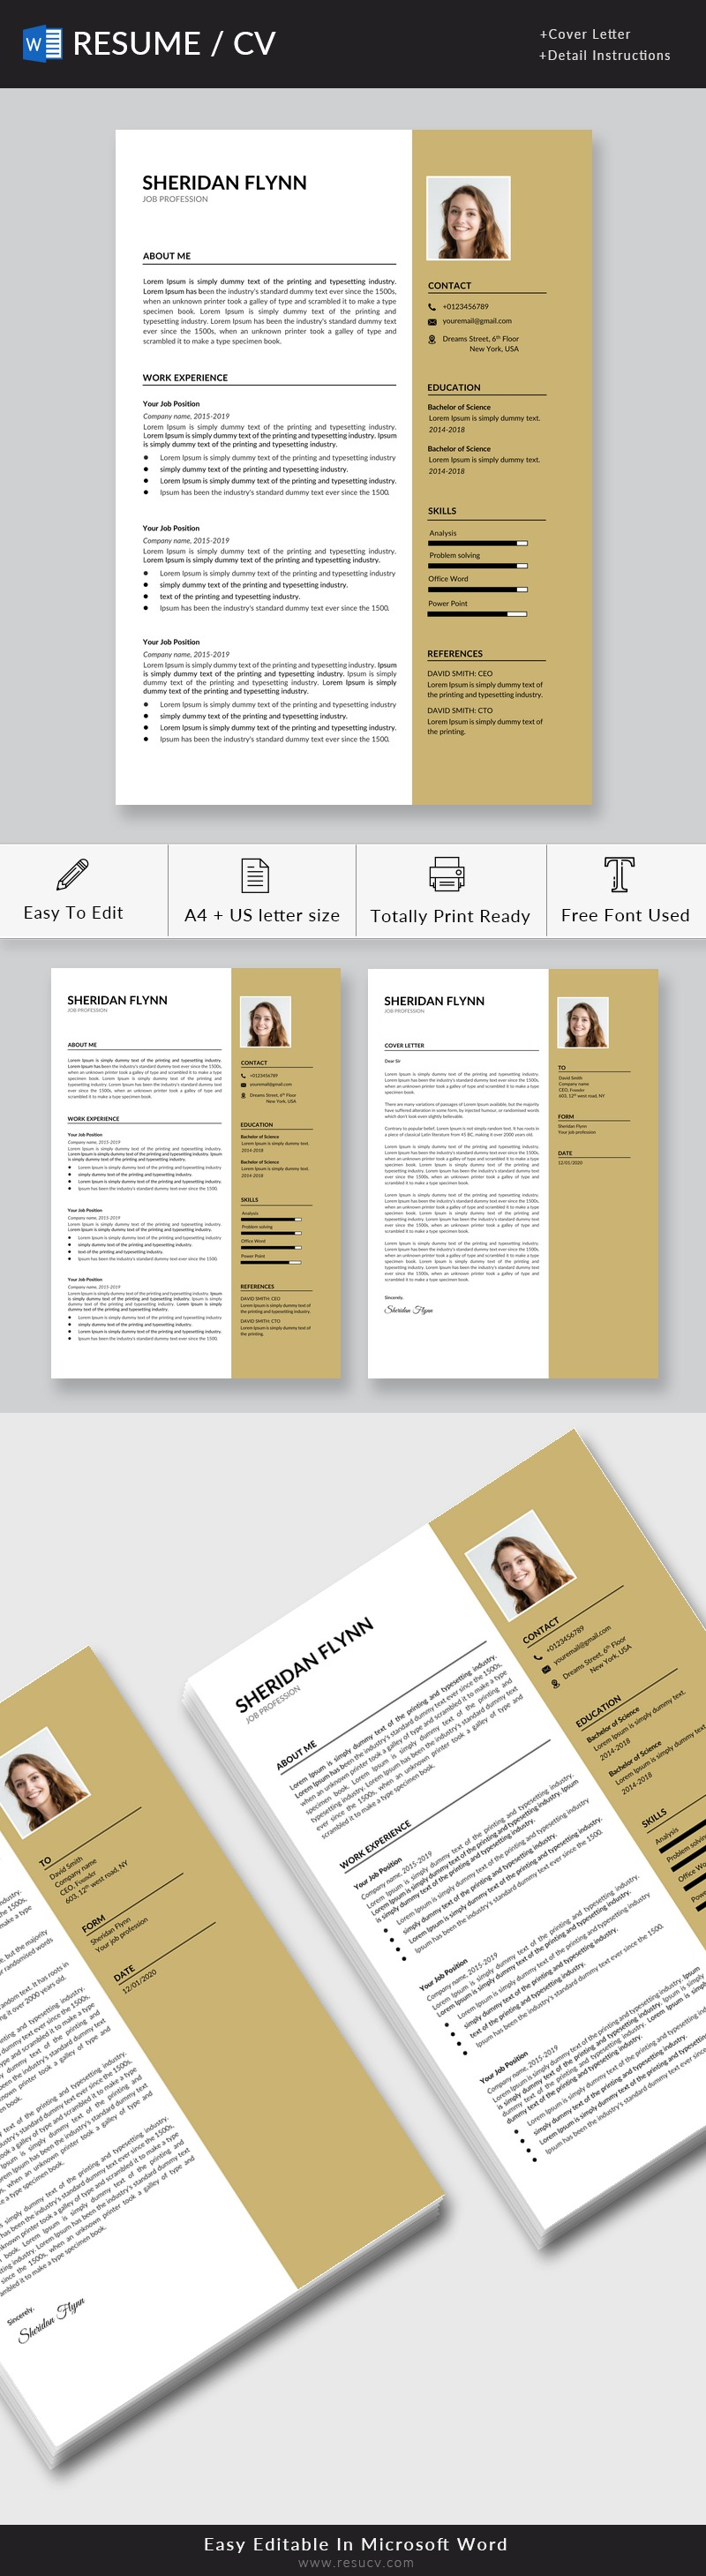 Creative Resume, MS Word Resume, Two Page, Modern Resume